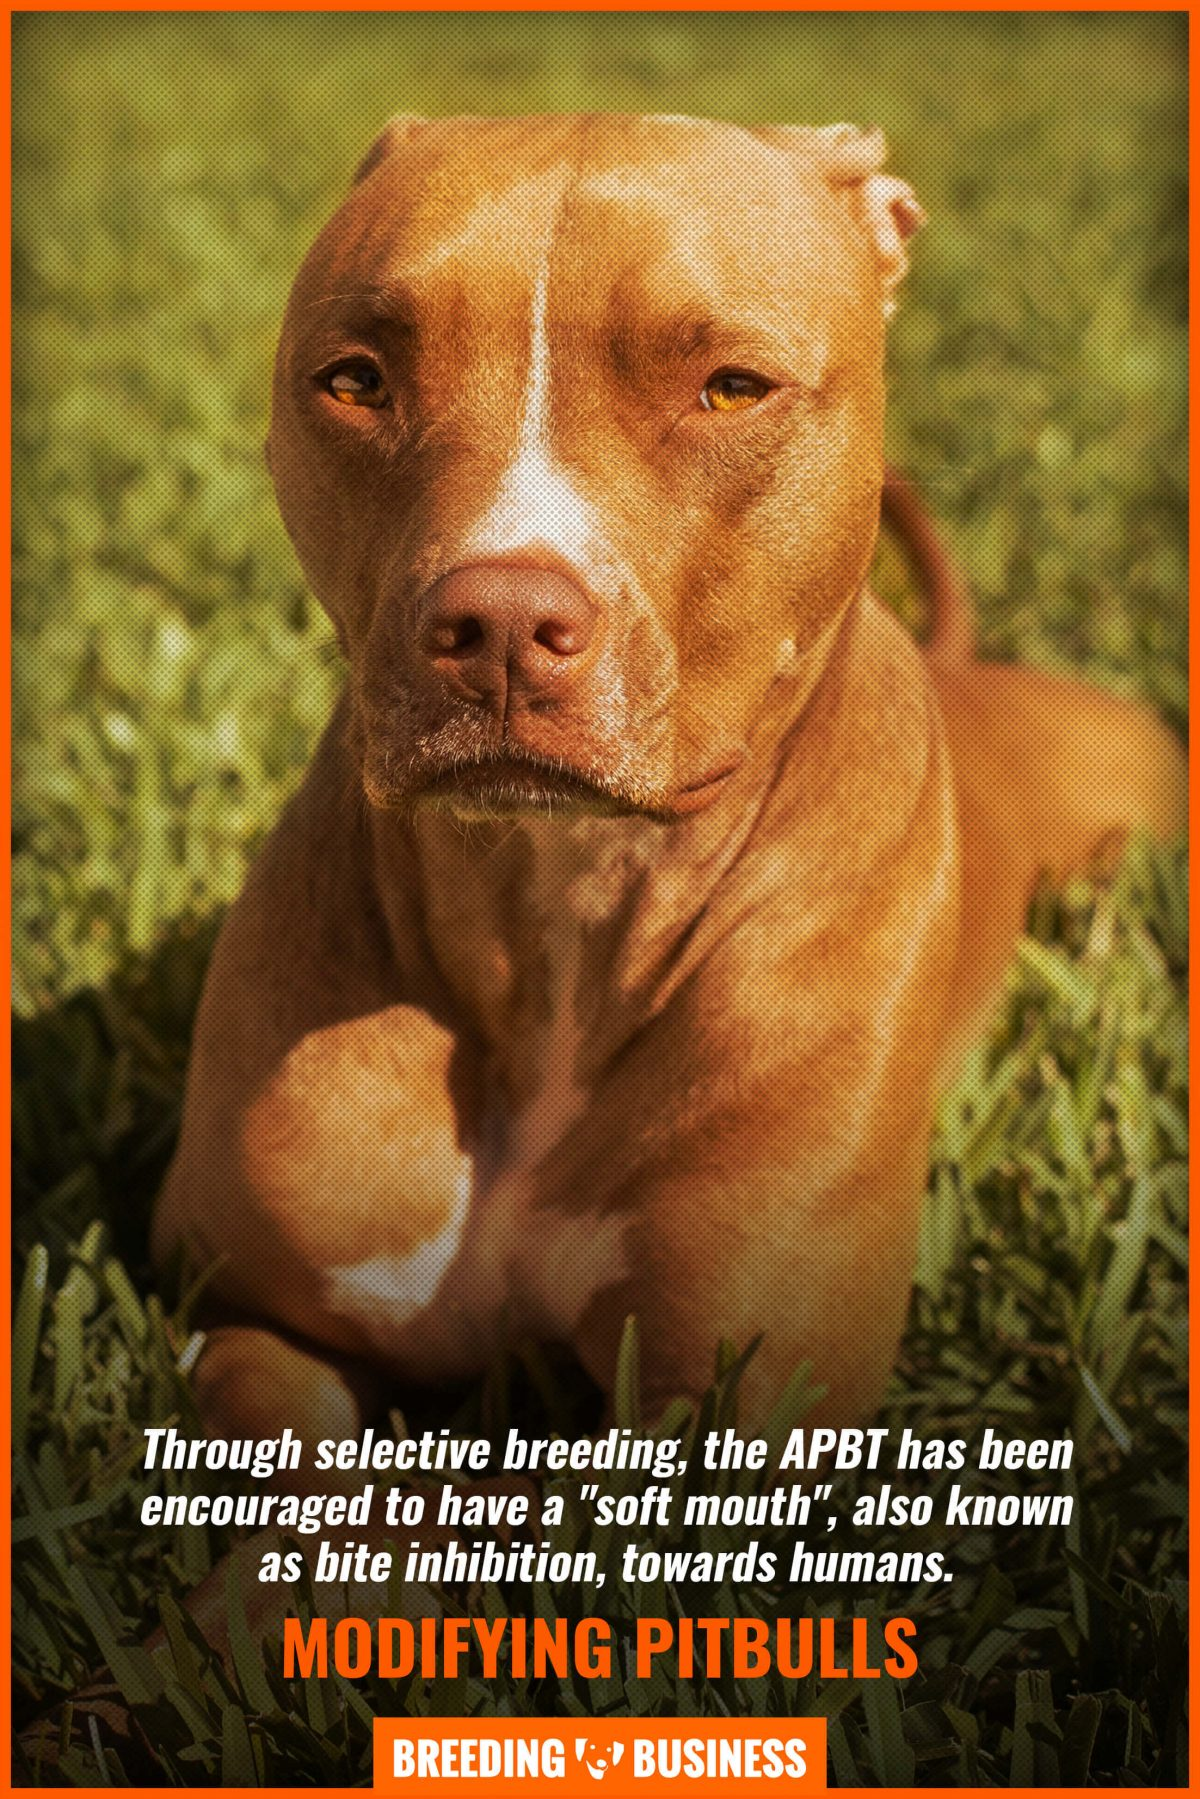 modifying pitbulls